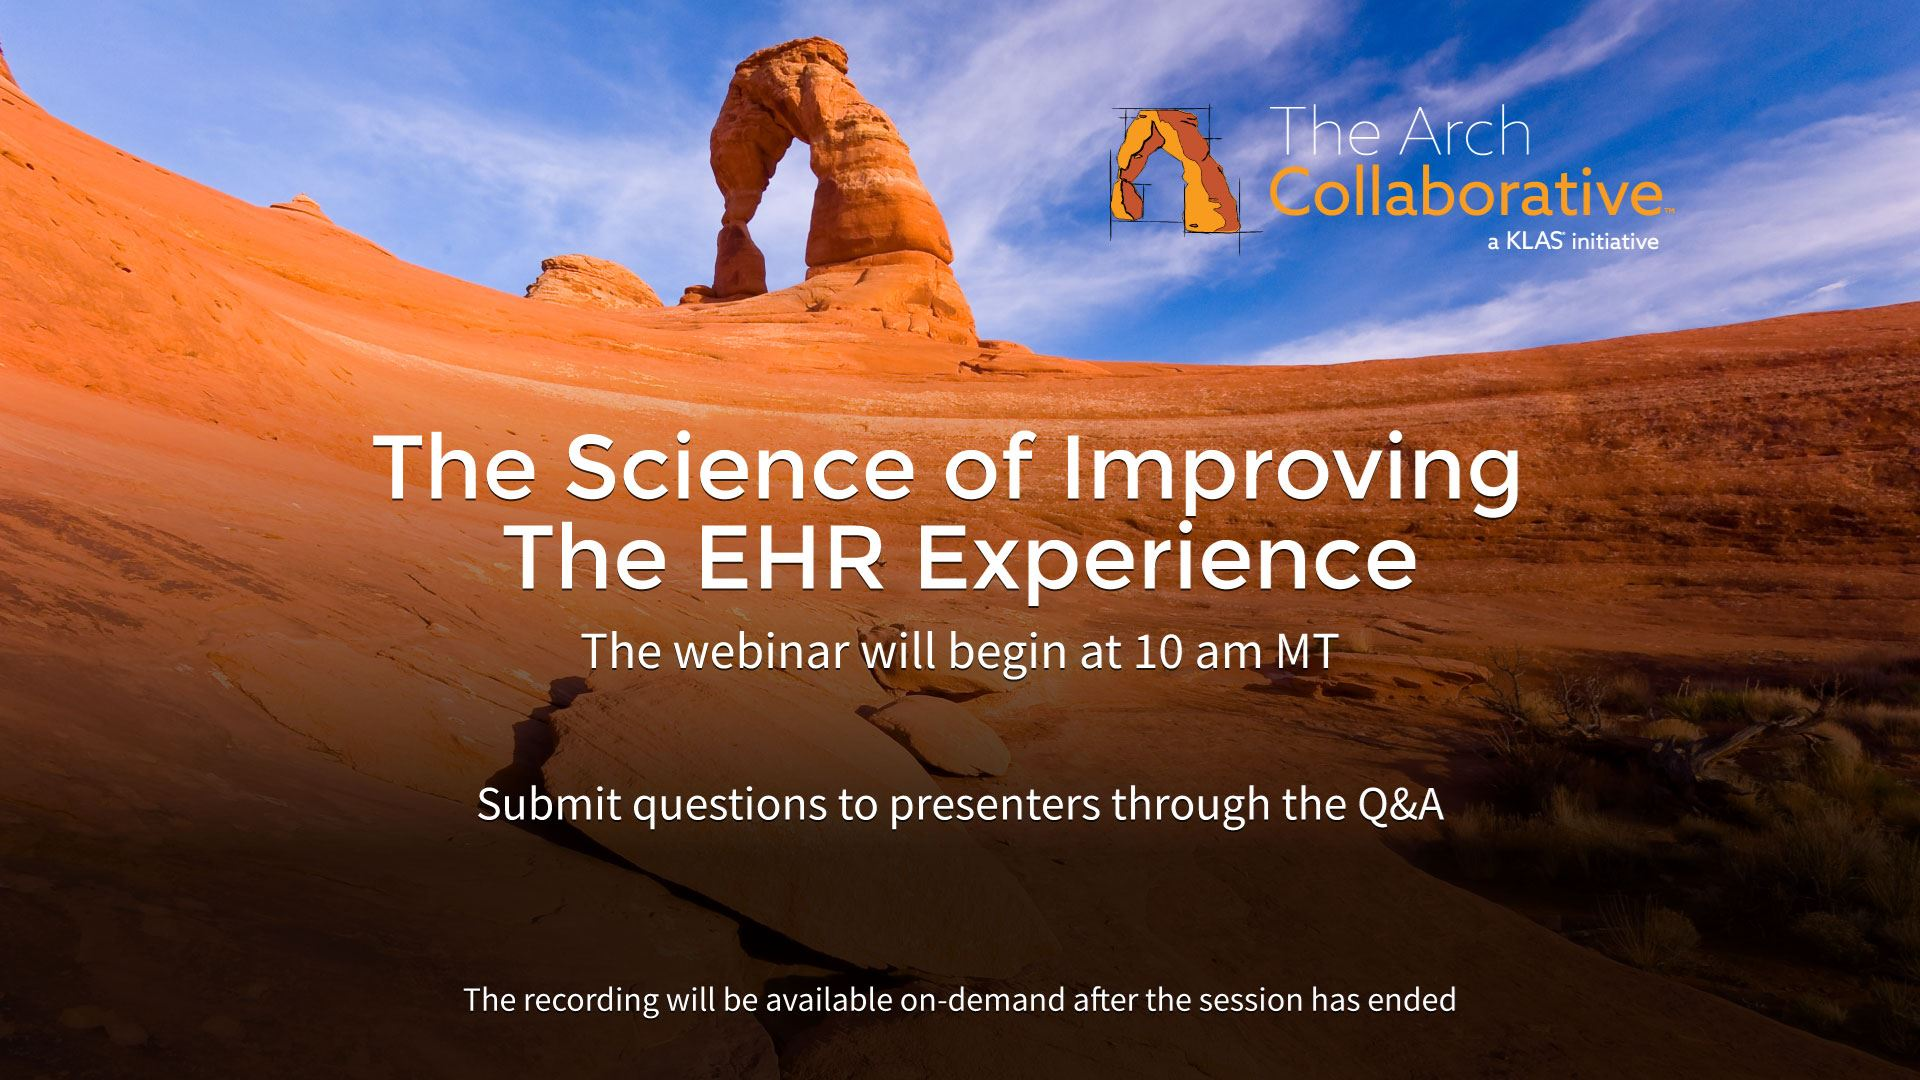 The Science of Improving the EHR Experience (Webinar)